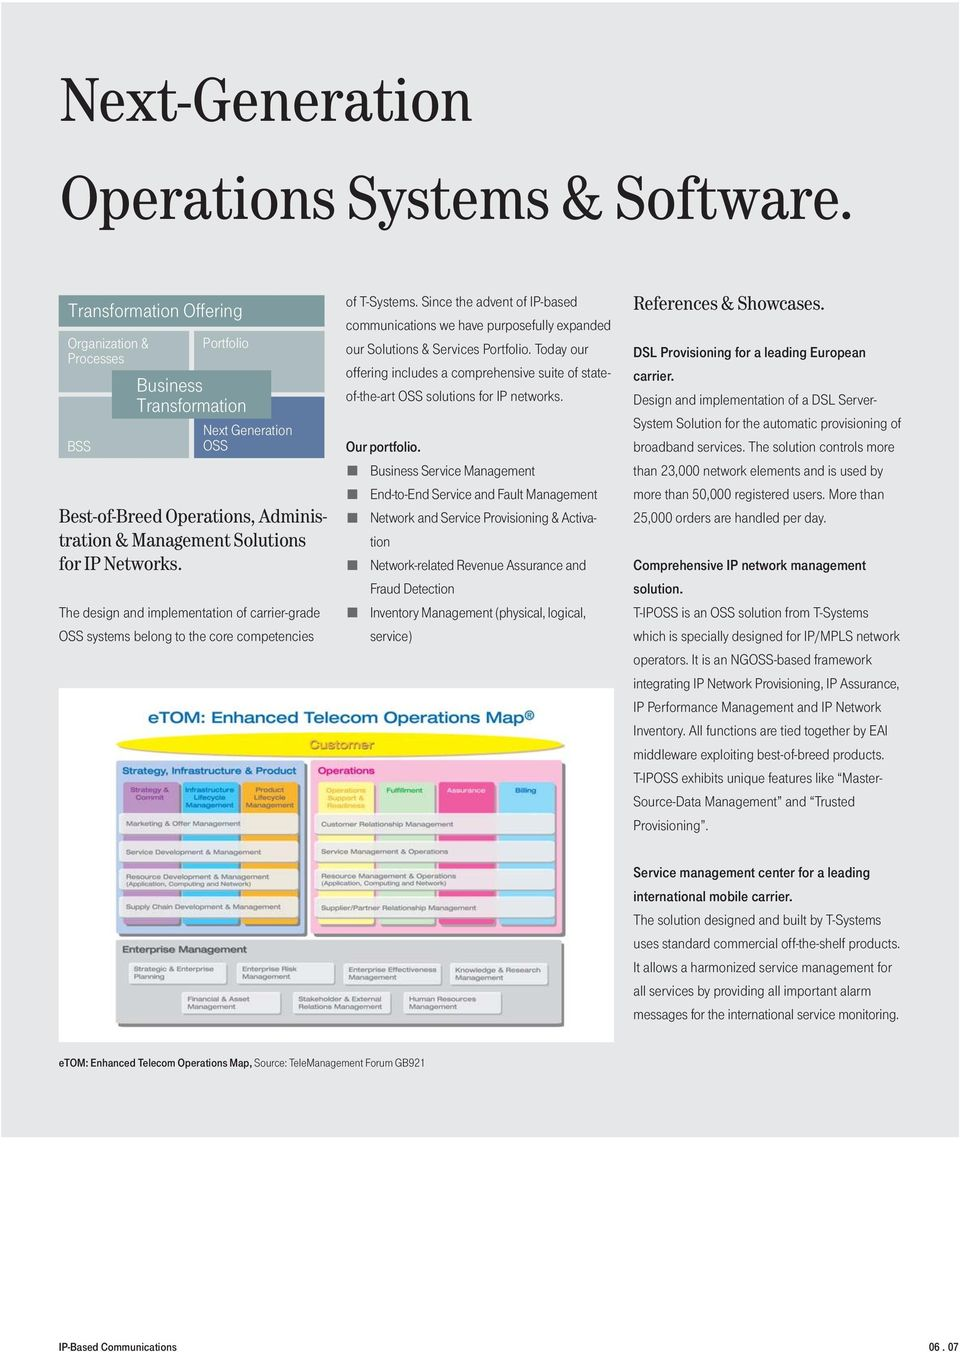 The design and implementation of carrier-grade OSS systems belong to the core competencies of T-Systems.